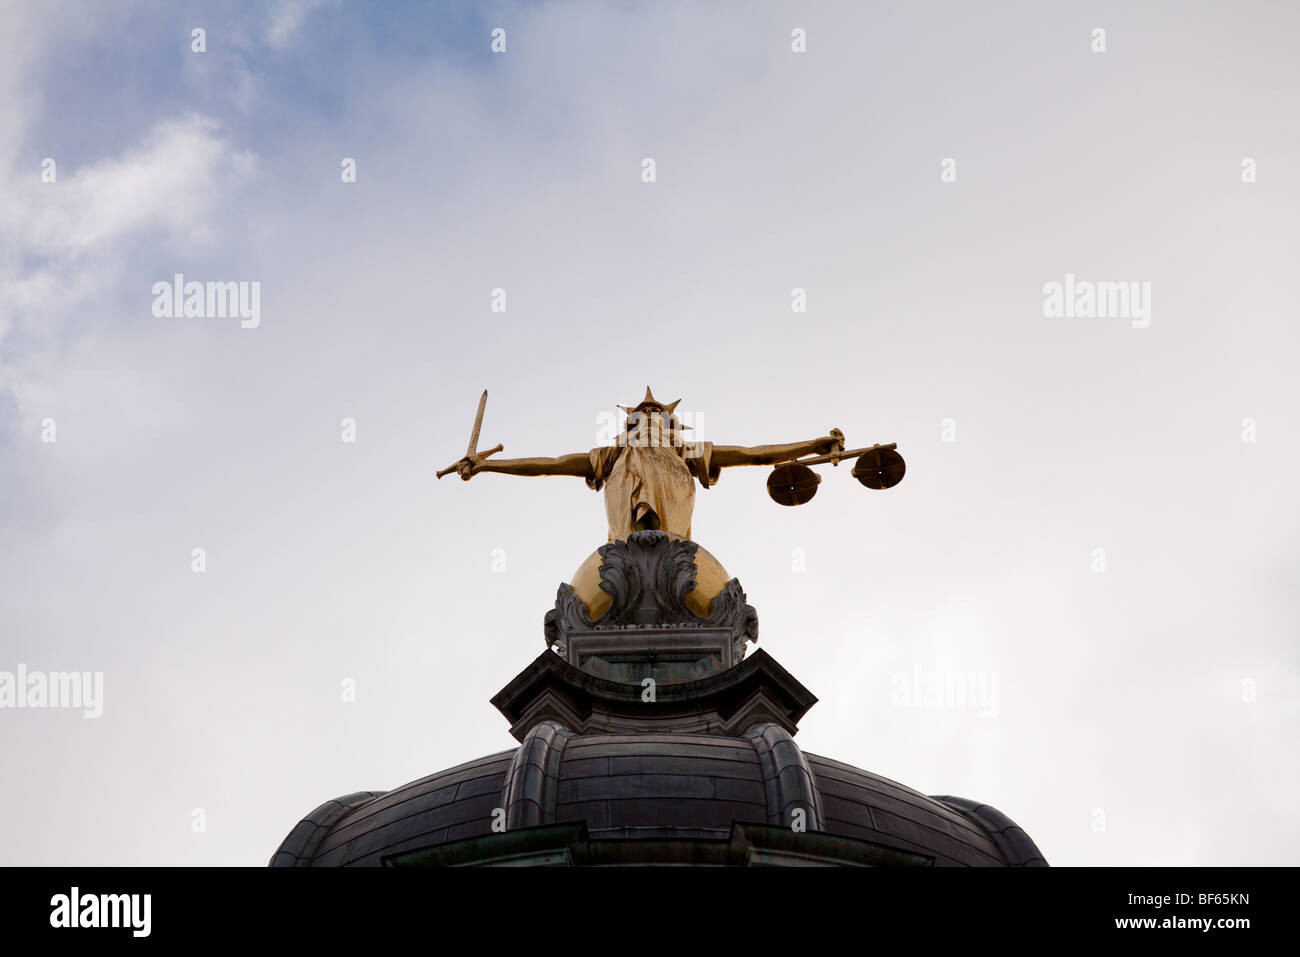 Shot of Statue on top of Old Bailey, London - Stock Image